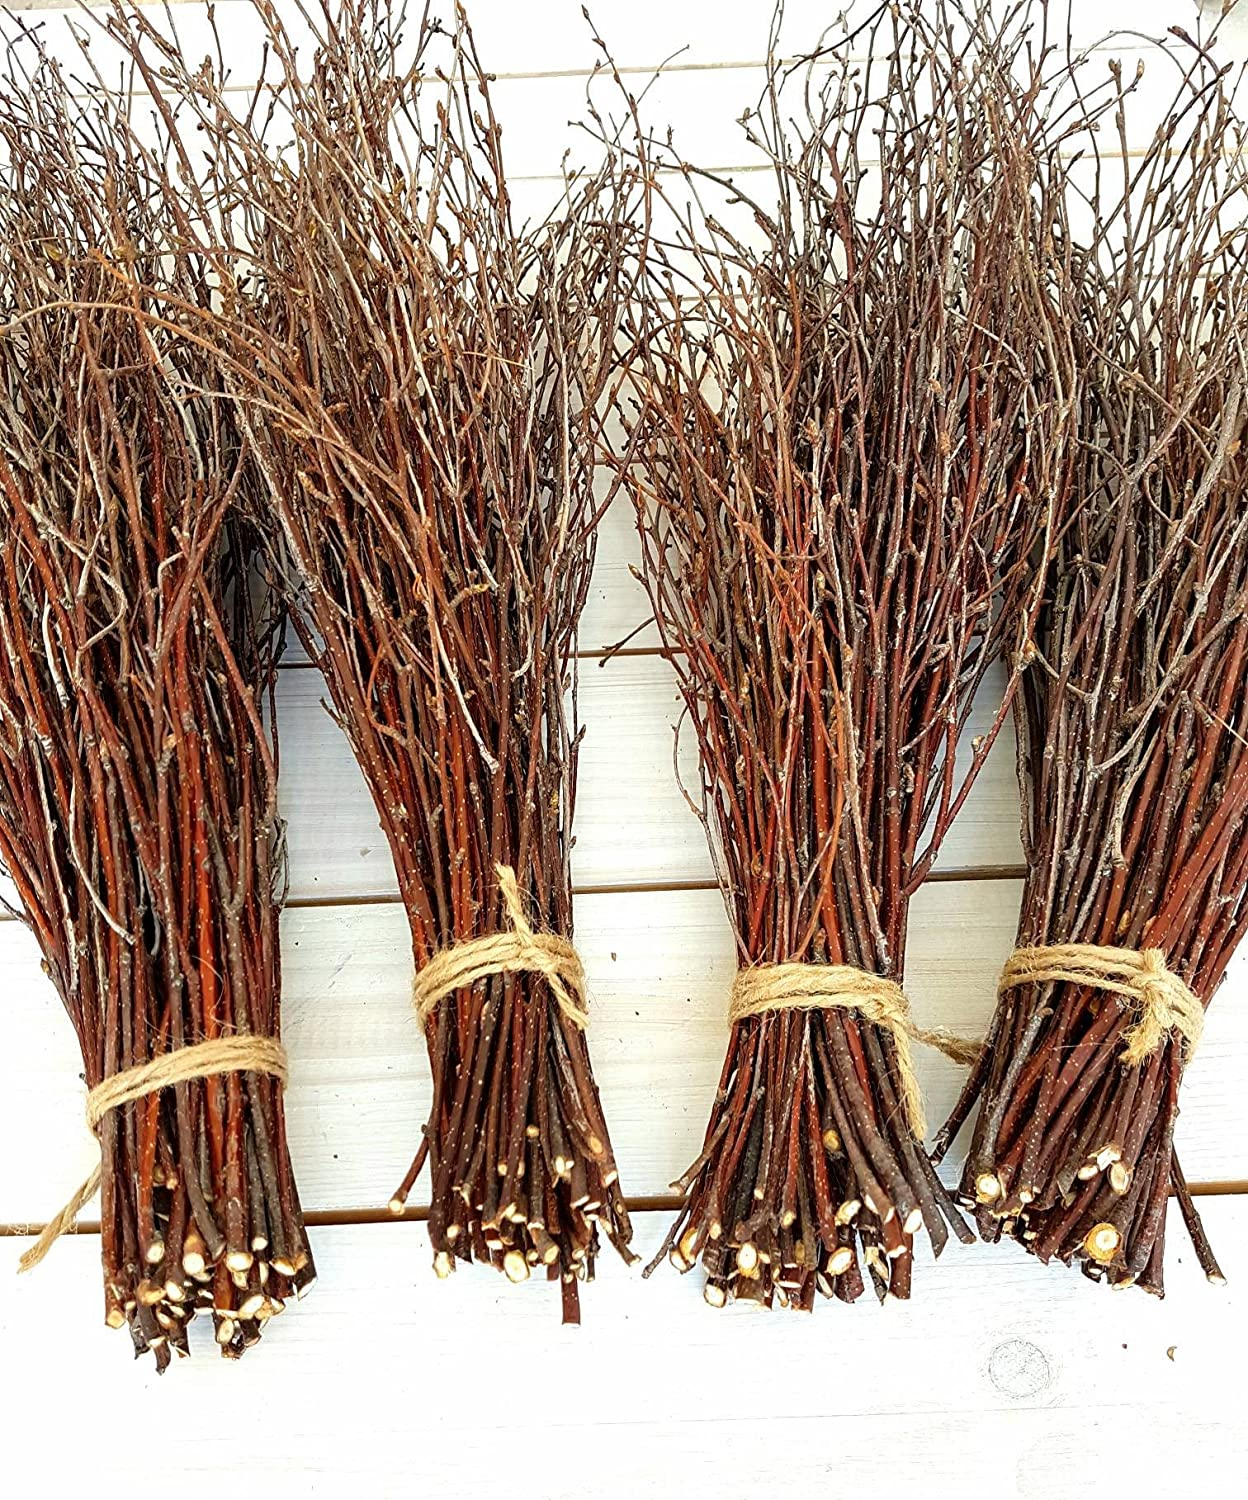 200 pcs. Birch Branches, Natural Birch Twigs, Birch Branches centerpieces, Decorative Birch, Birch Branches for Crafts, Set of 4 Bundles